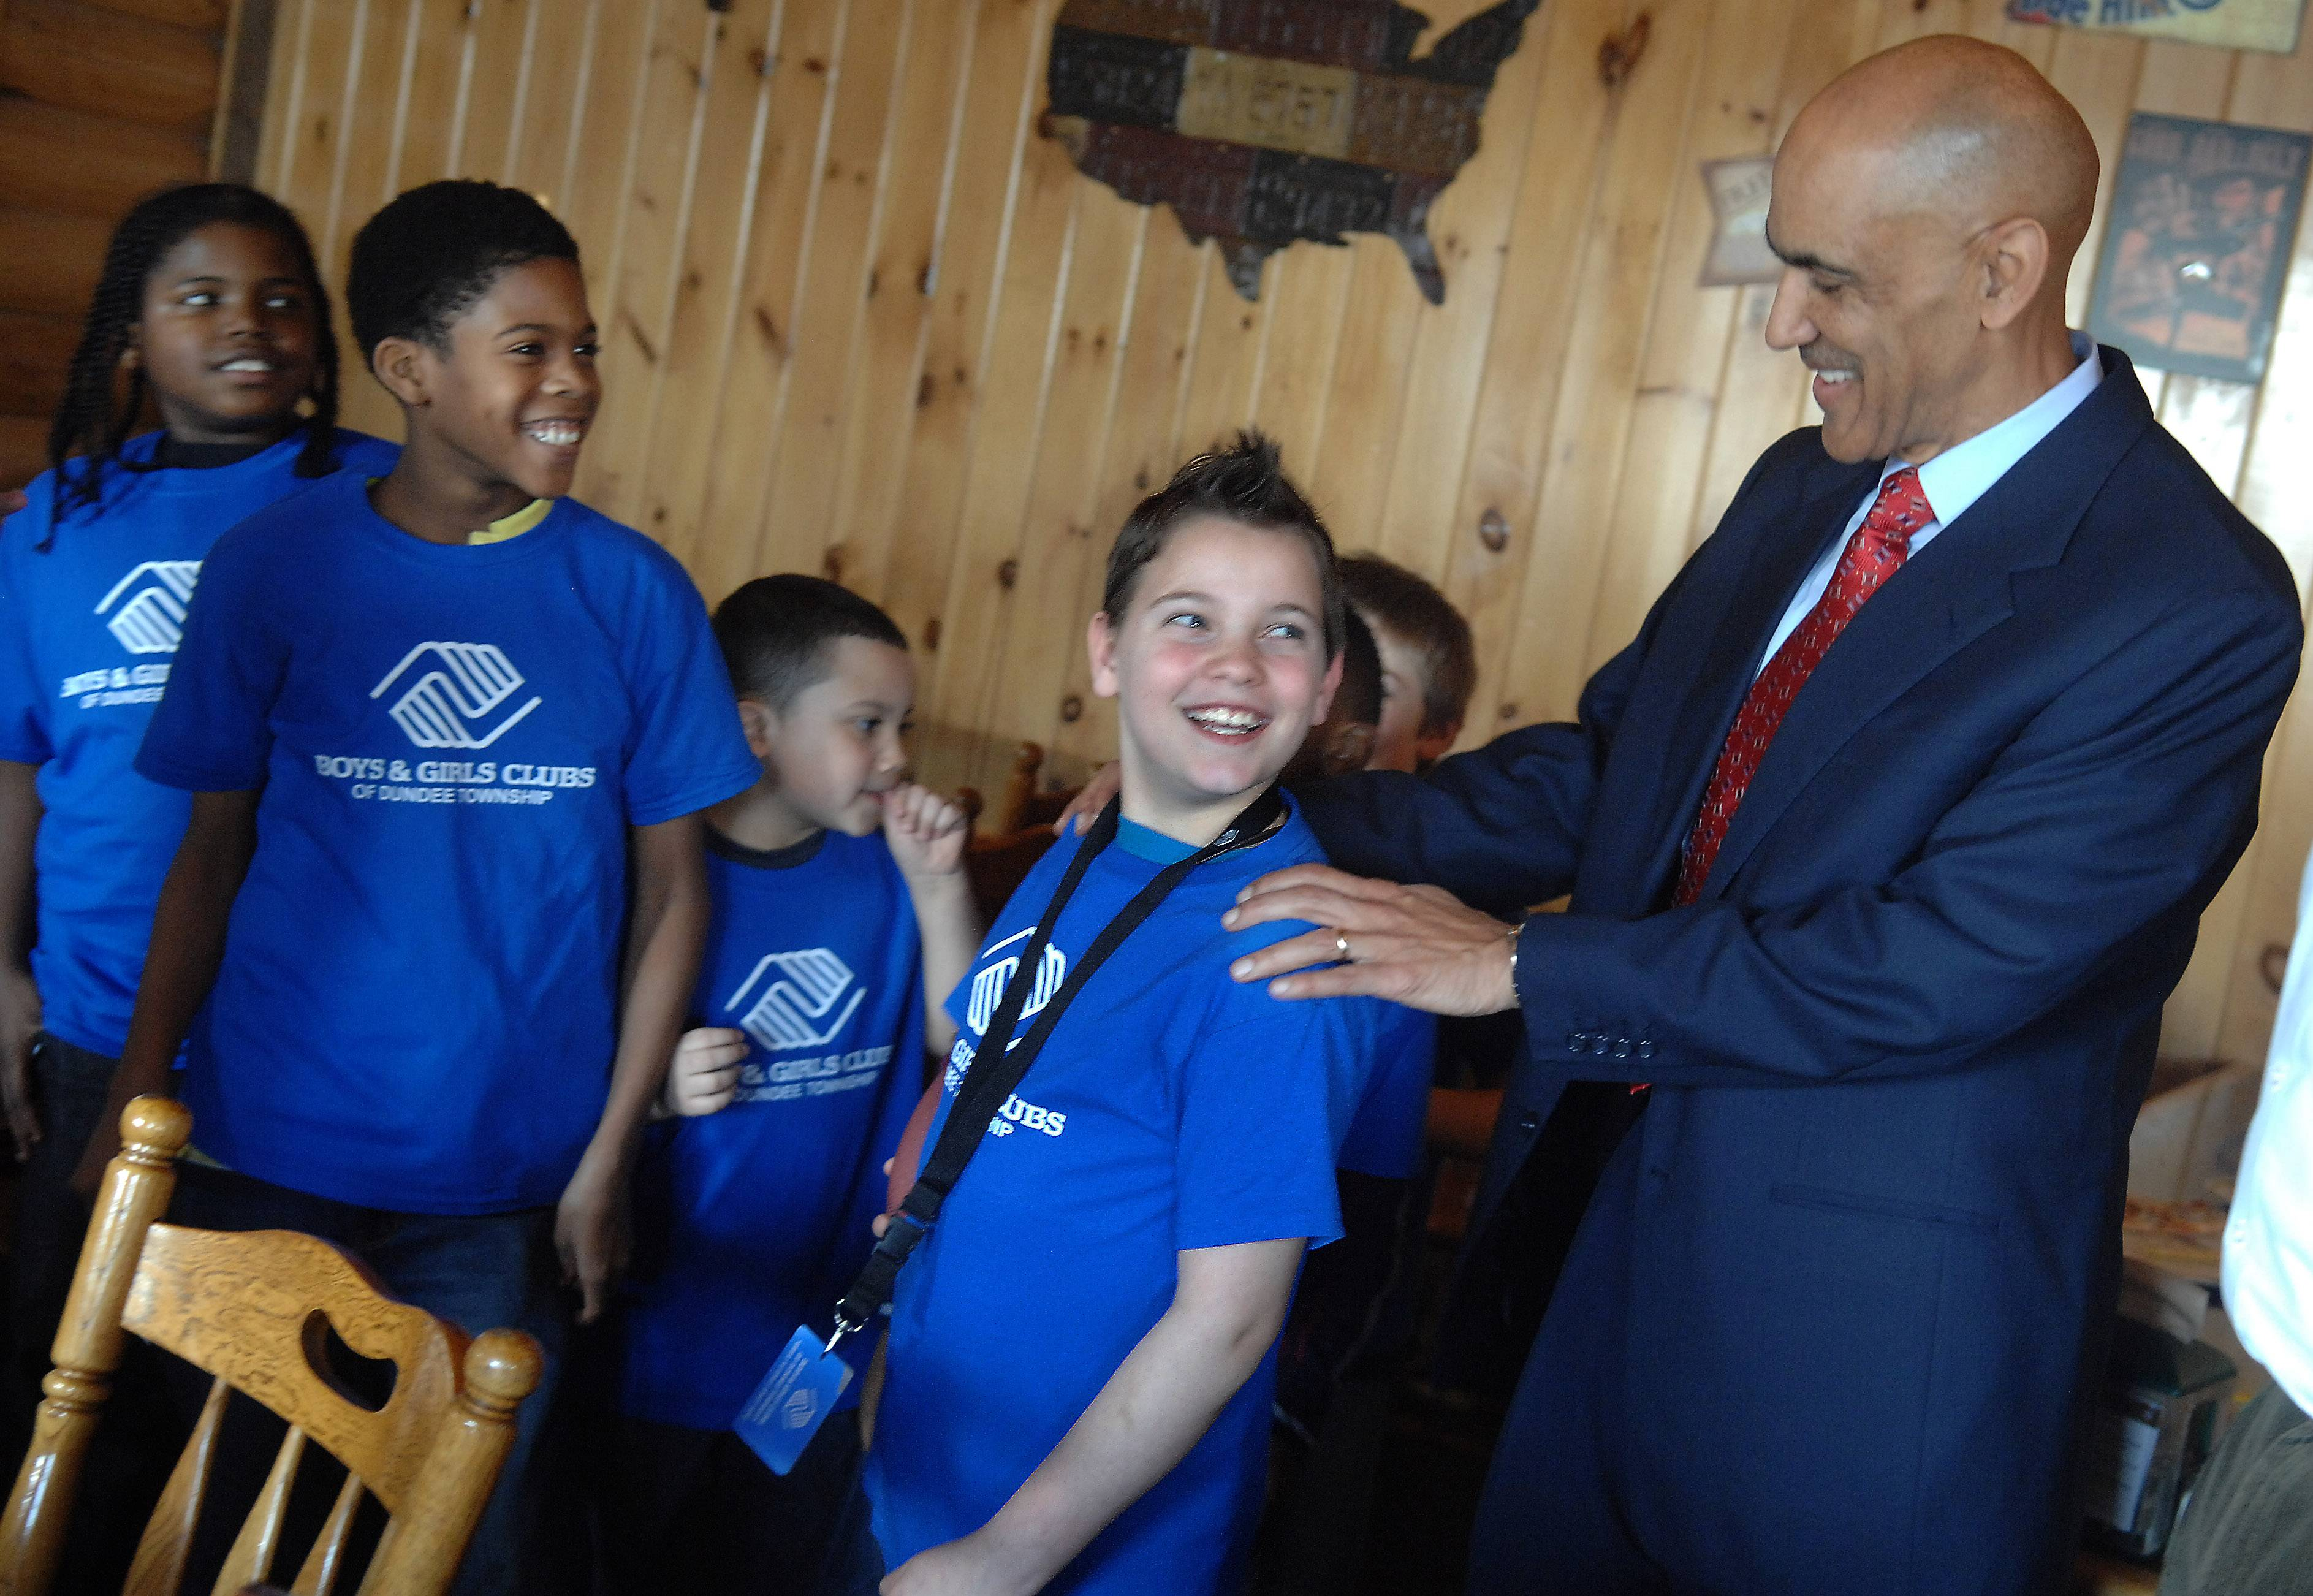 Super Bowl-winning former coach of the Indianapolis Colts Tony Dungy talks with Michael Mcwethy, 9, of Carpentersville Thursday during a meeting with Boys & Girls Clubs of Dundee Township to talk about their life experiences, the importance of teamwork and the value of school. The kids asked questions about Dungy's career after a lunch at Village Pizza in Elgin.